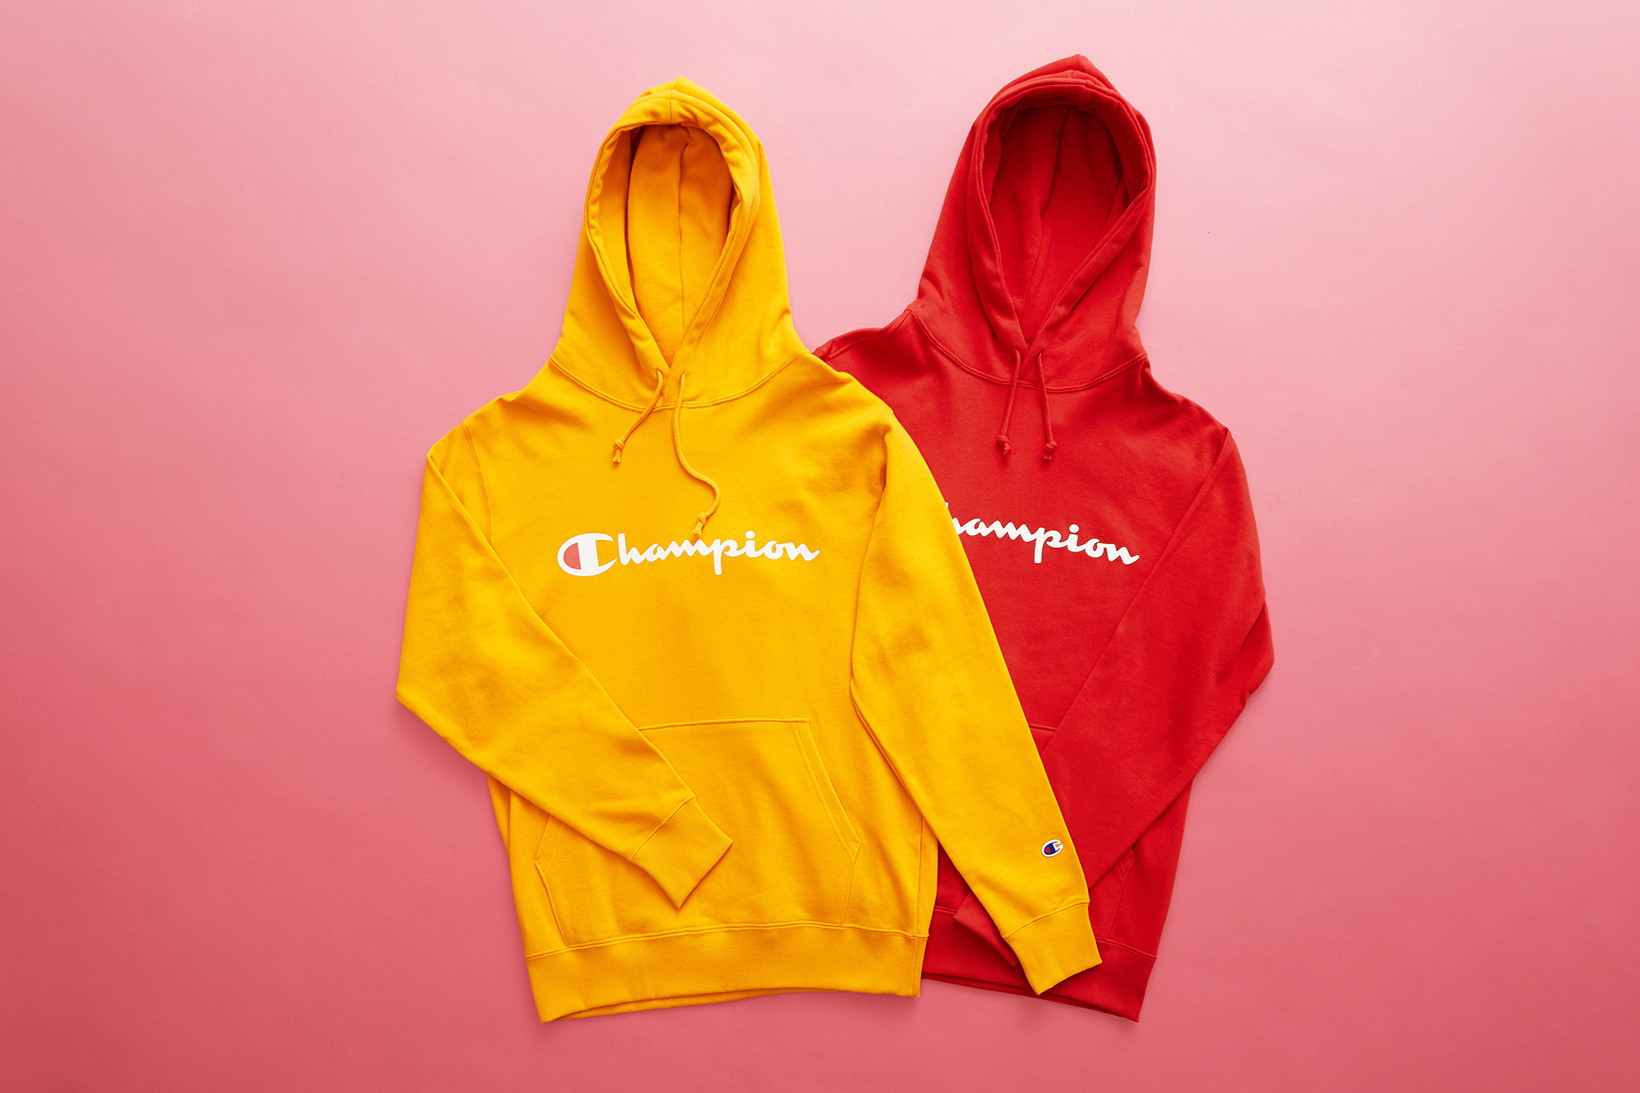 Skechers x Champion 2018 Clothing Collaboration